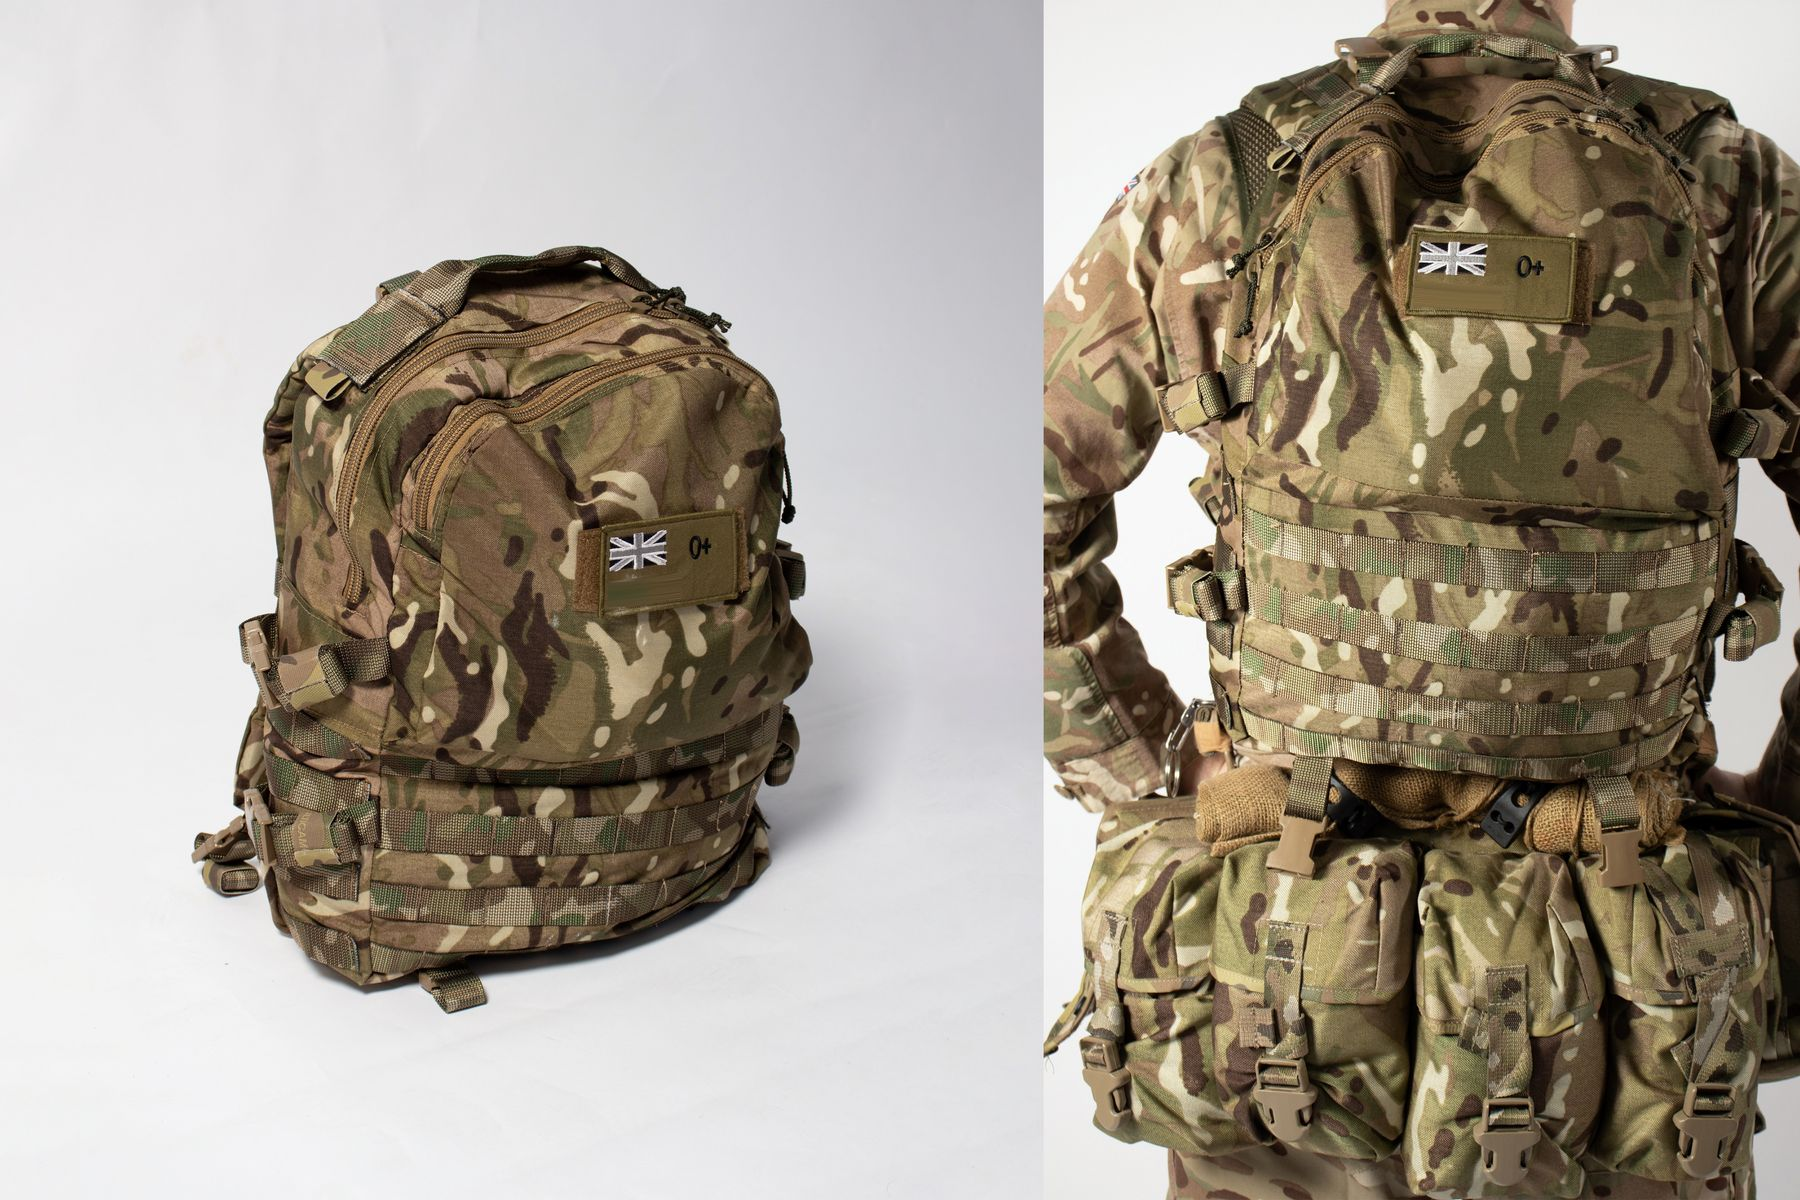 PLCE Daysack by BSc (Hons) Product Design student, Alex Field.